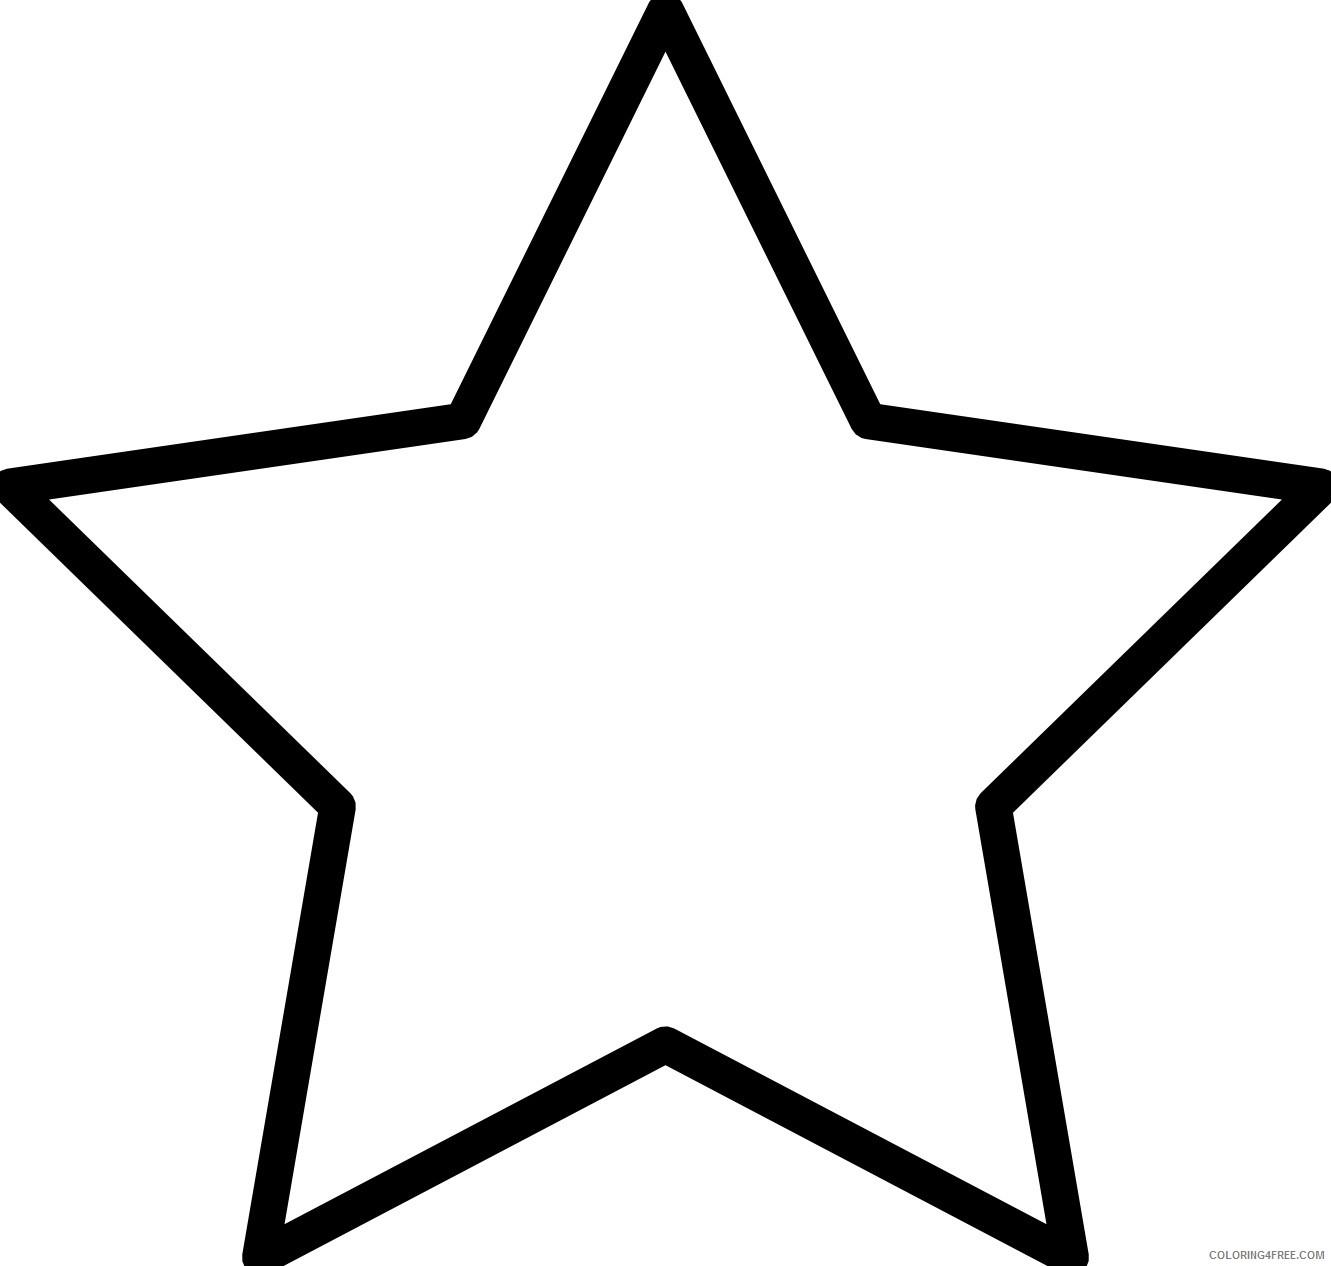 star coloring pages to print Coloring4free